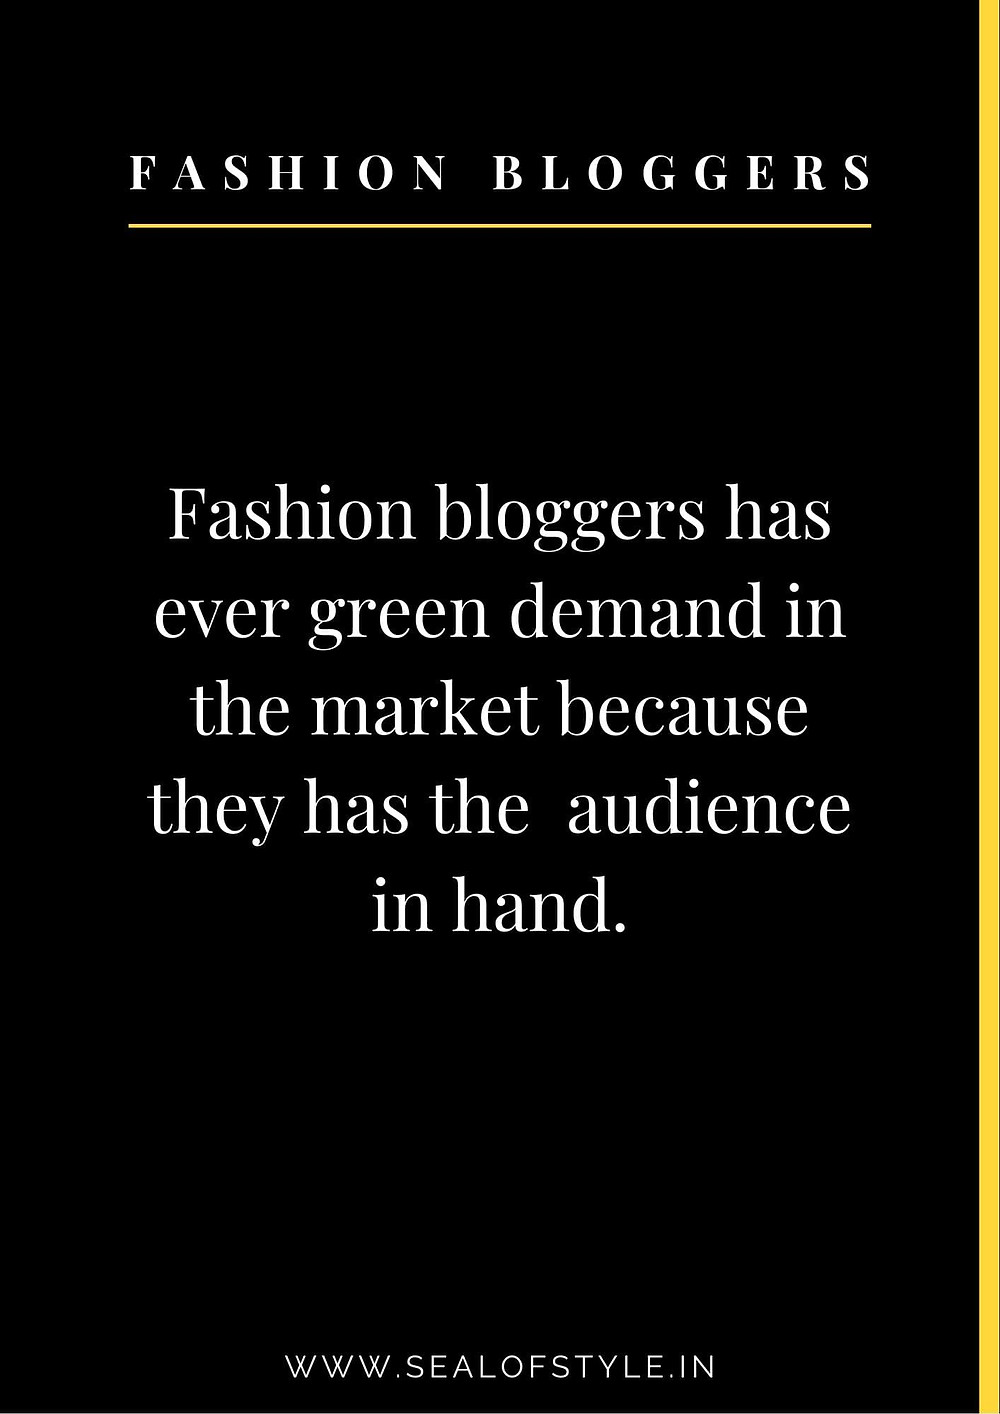 Information about fashion blogger in future